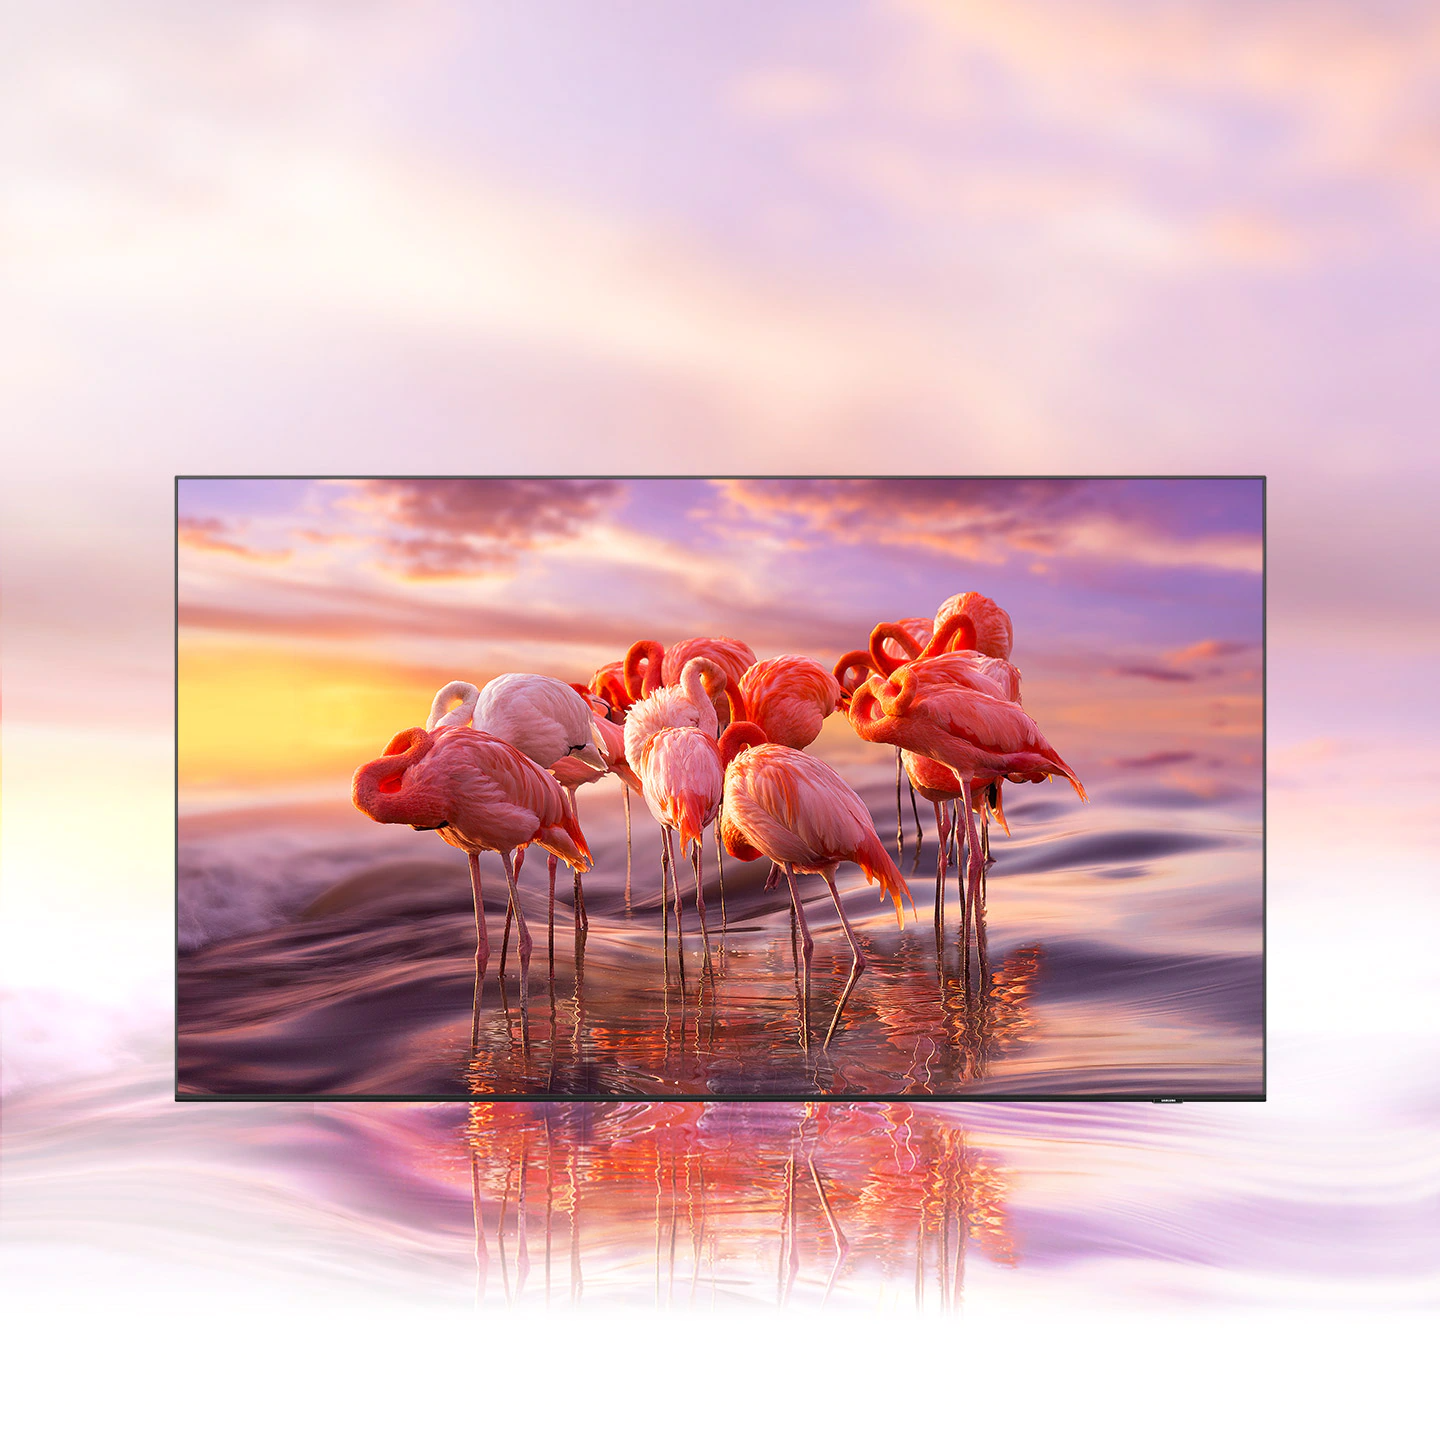 QLED TV displays an intricately coloured image of flamingos to demonstrate colour shading brilliance of Quantum Dot technology.